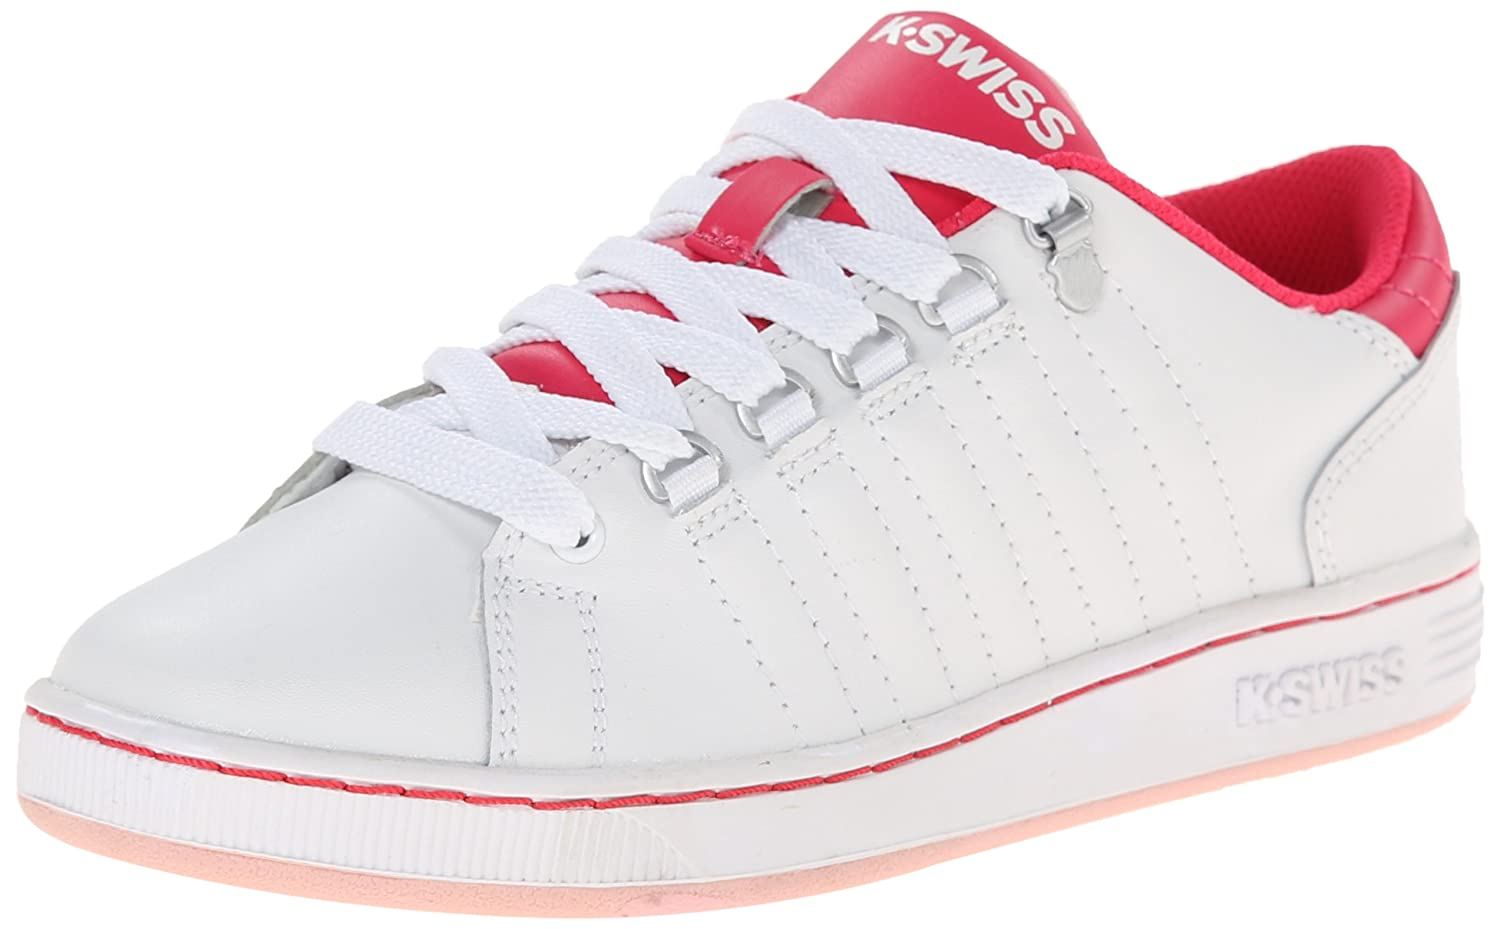 Big Kid K-Swiss Lozan GS Tennis Shoe